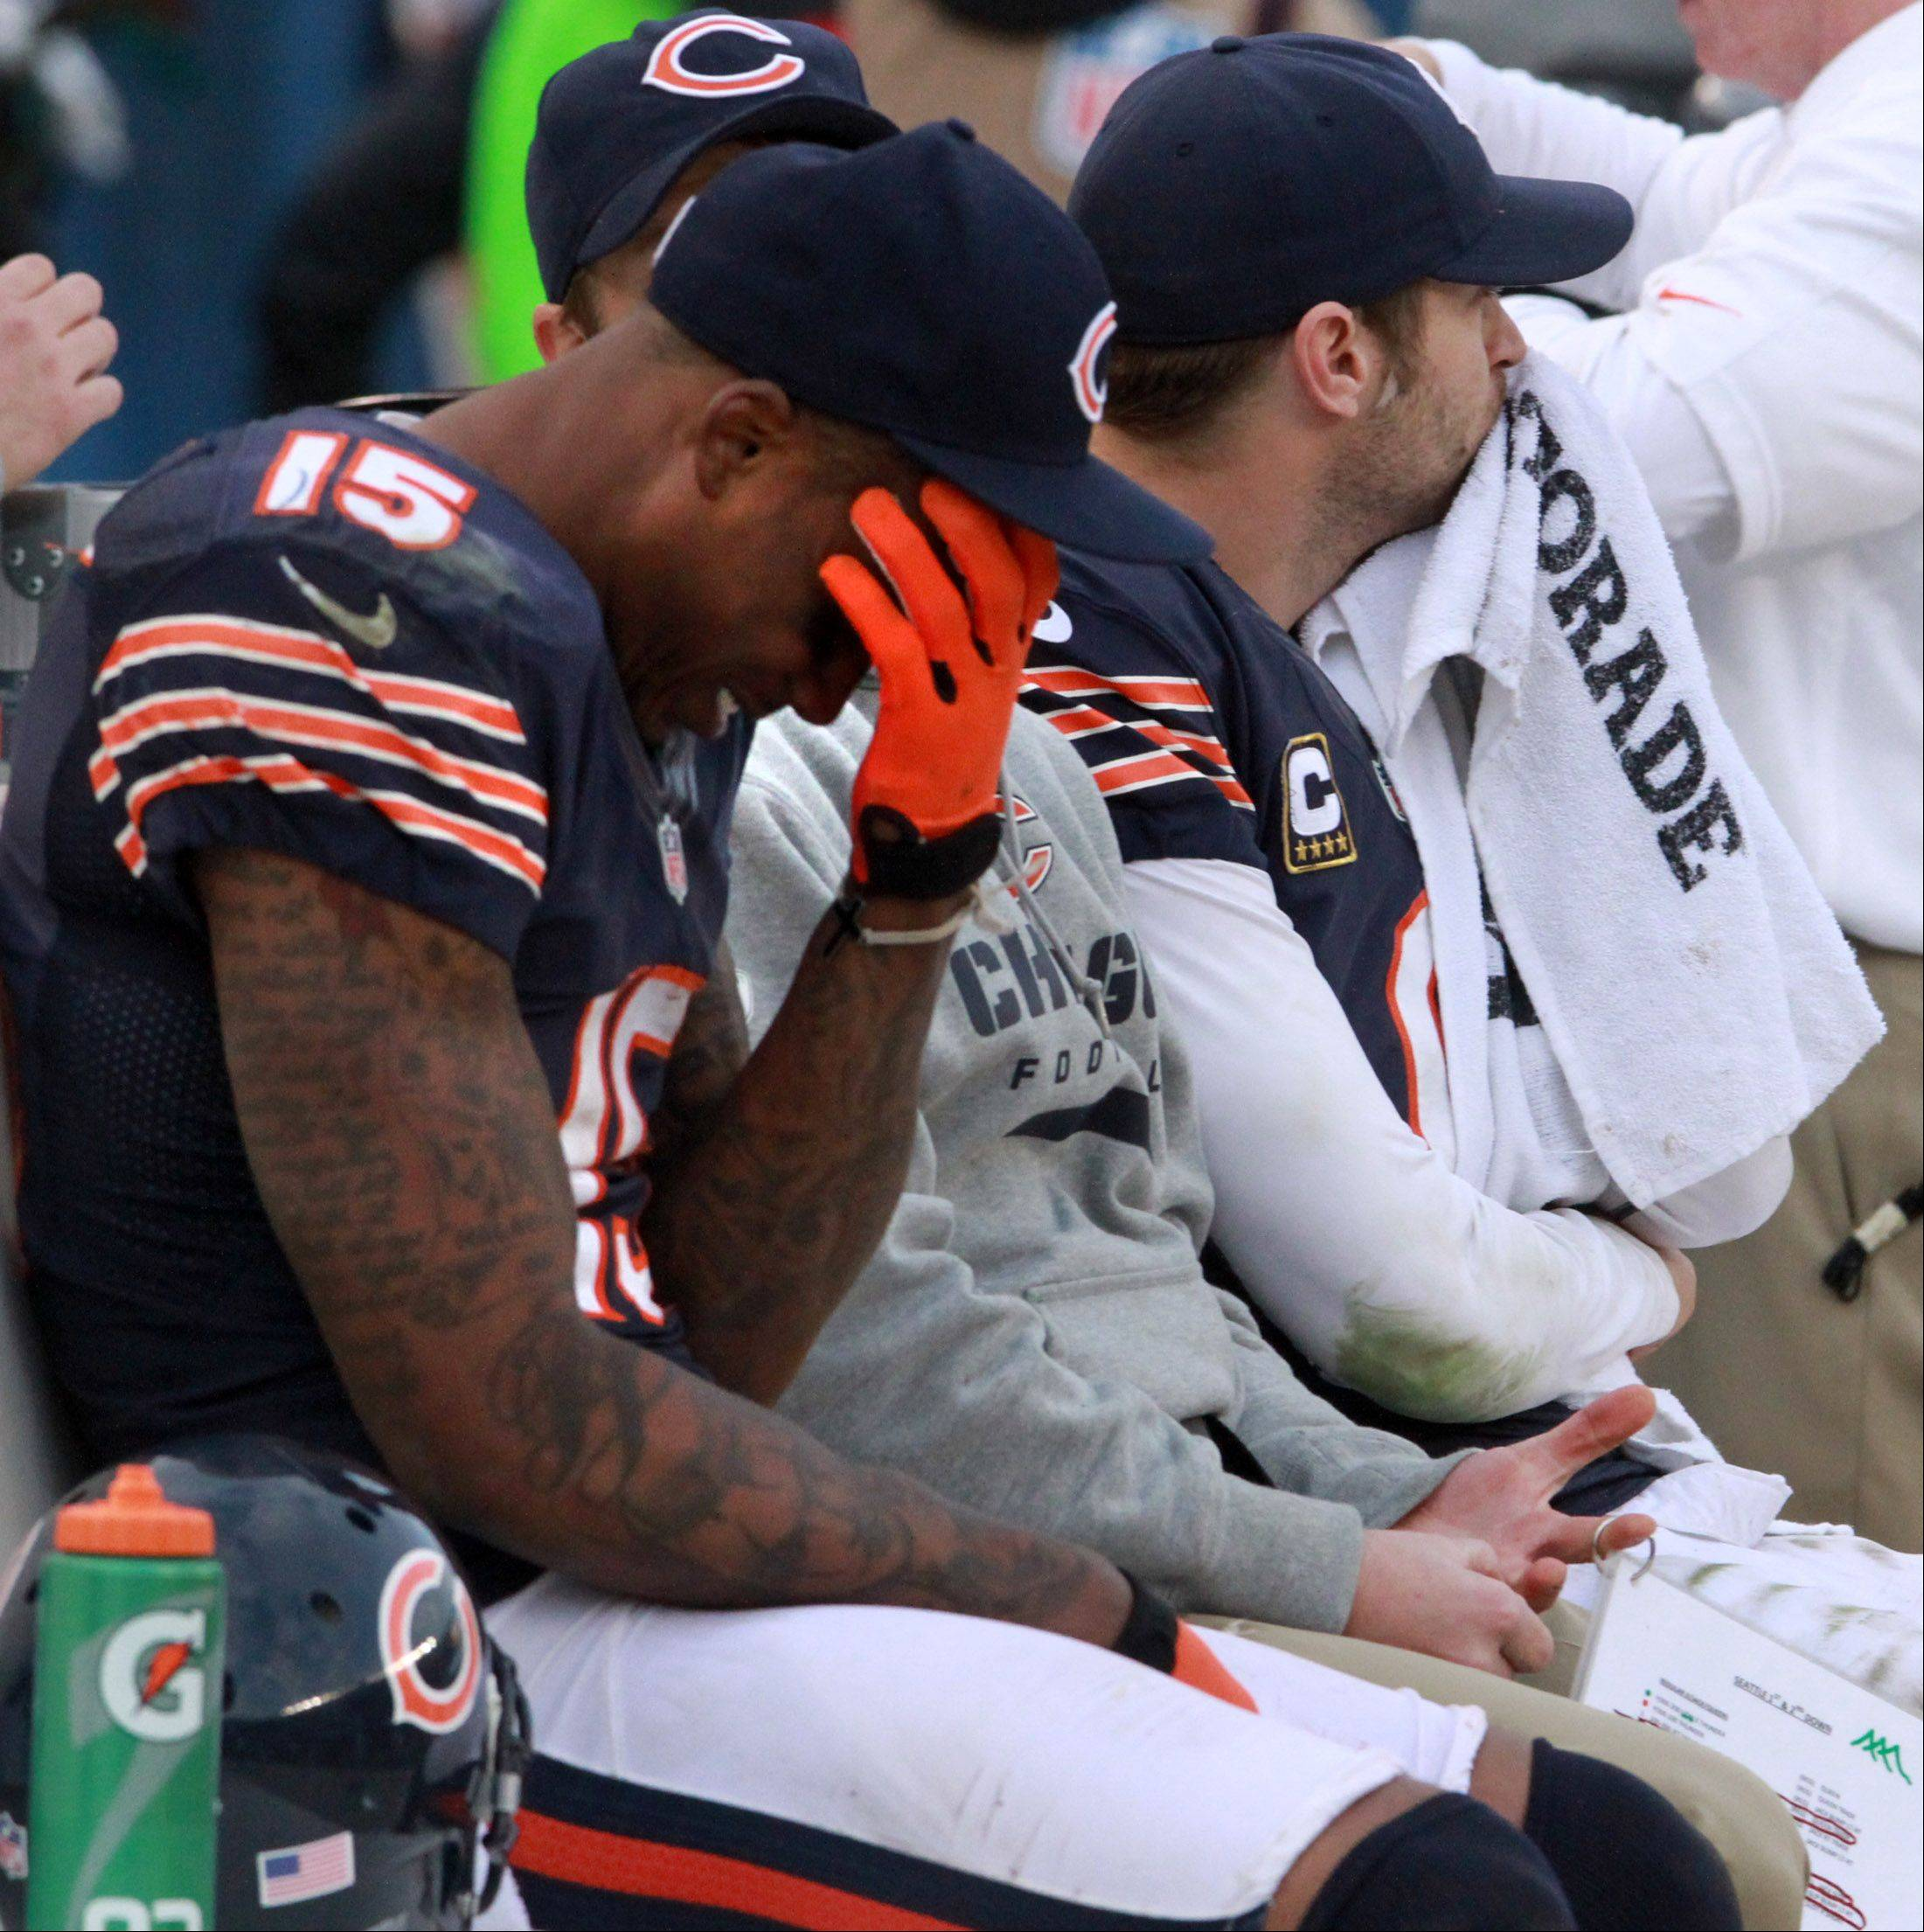 Bears wide receiver Brandon Marshall and quarterback Jay Cutler react from the bench as the Seahawks score near the end of regulation Sunday at Soldier Field.